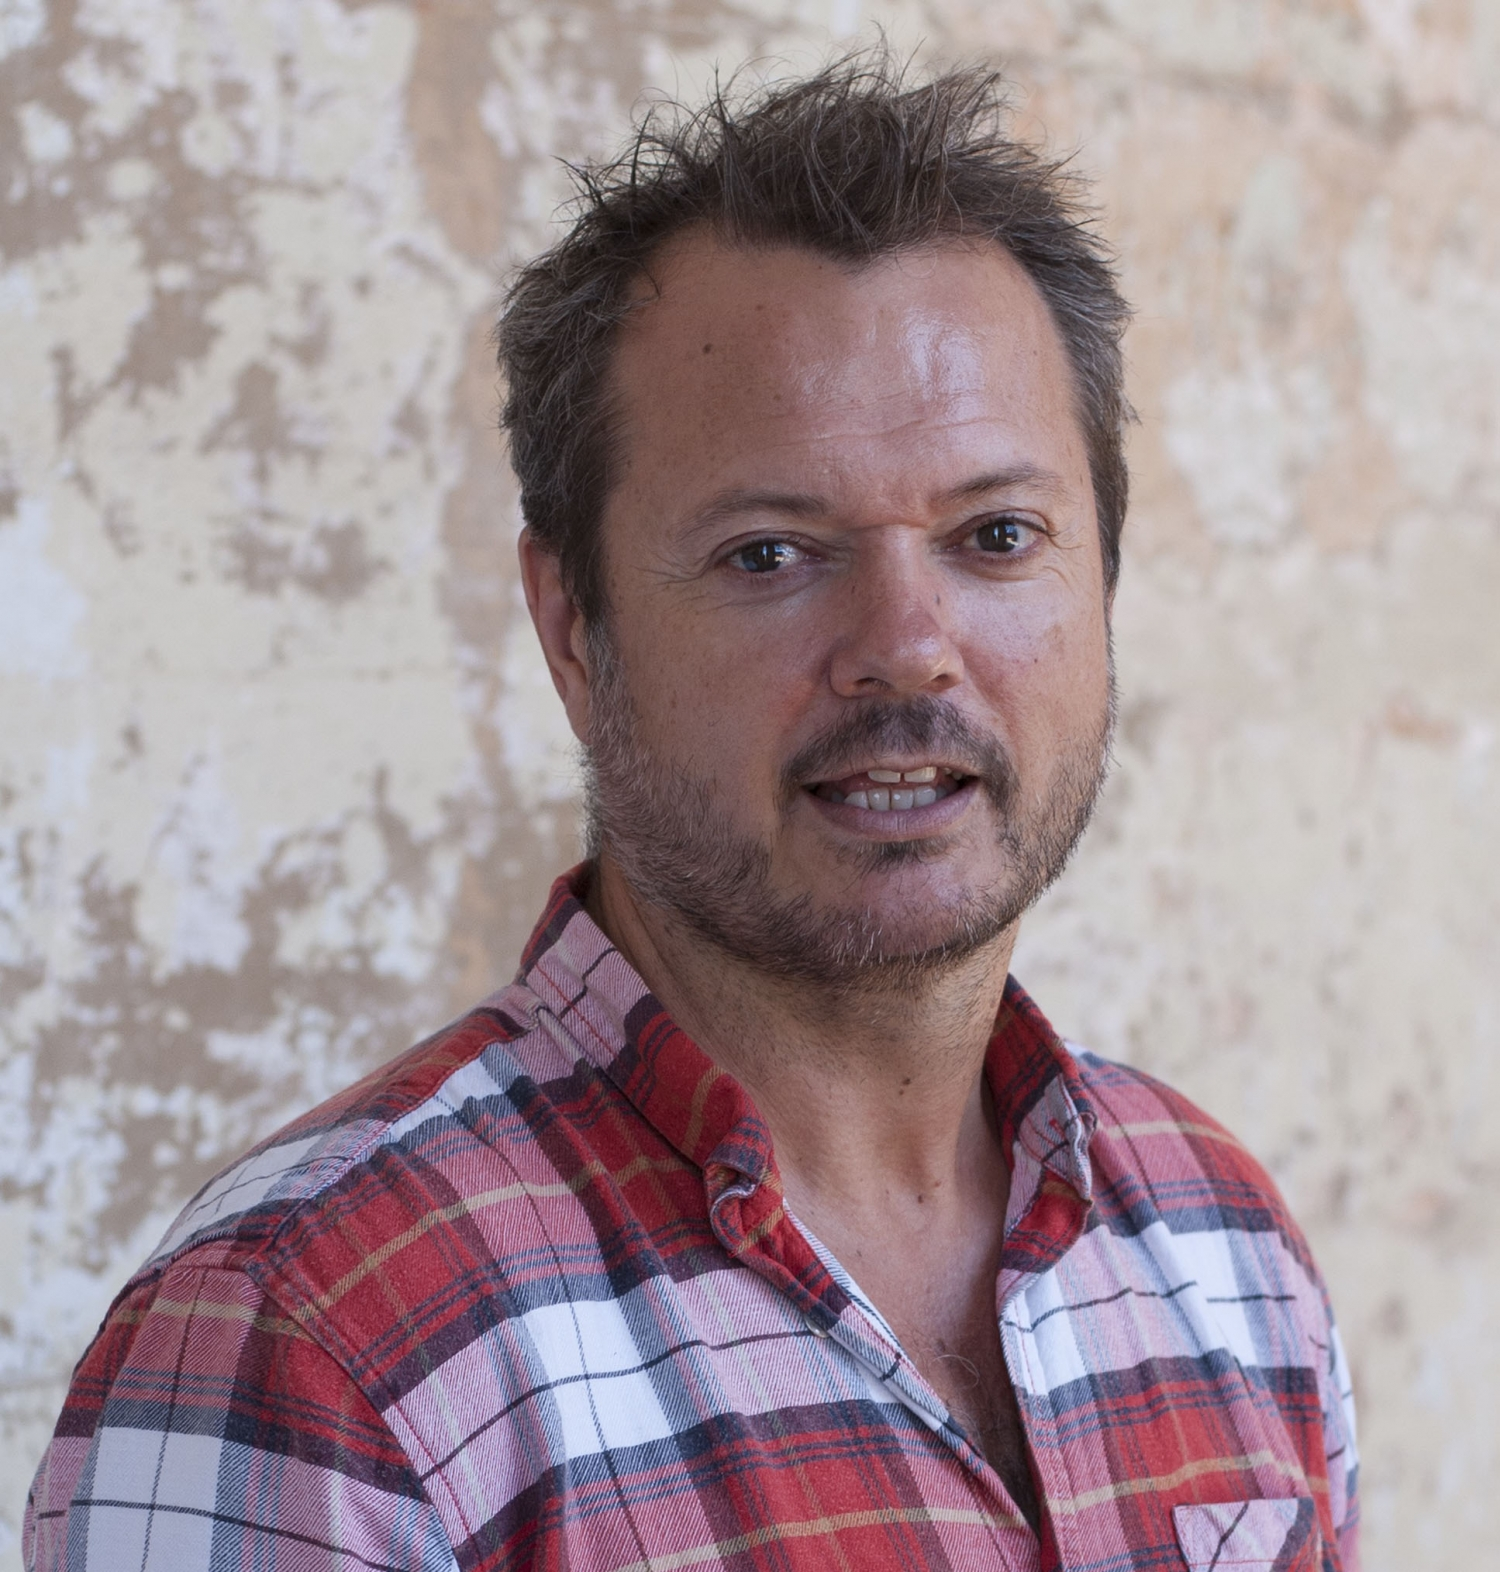 Headshot of a man in a chequered shirt